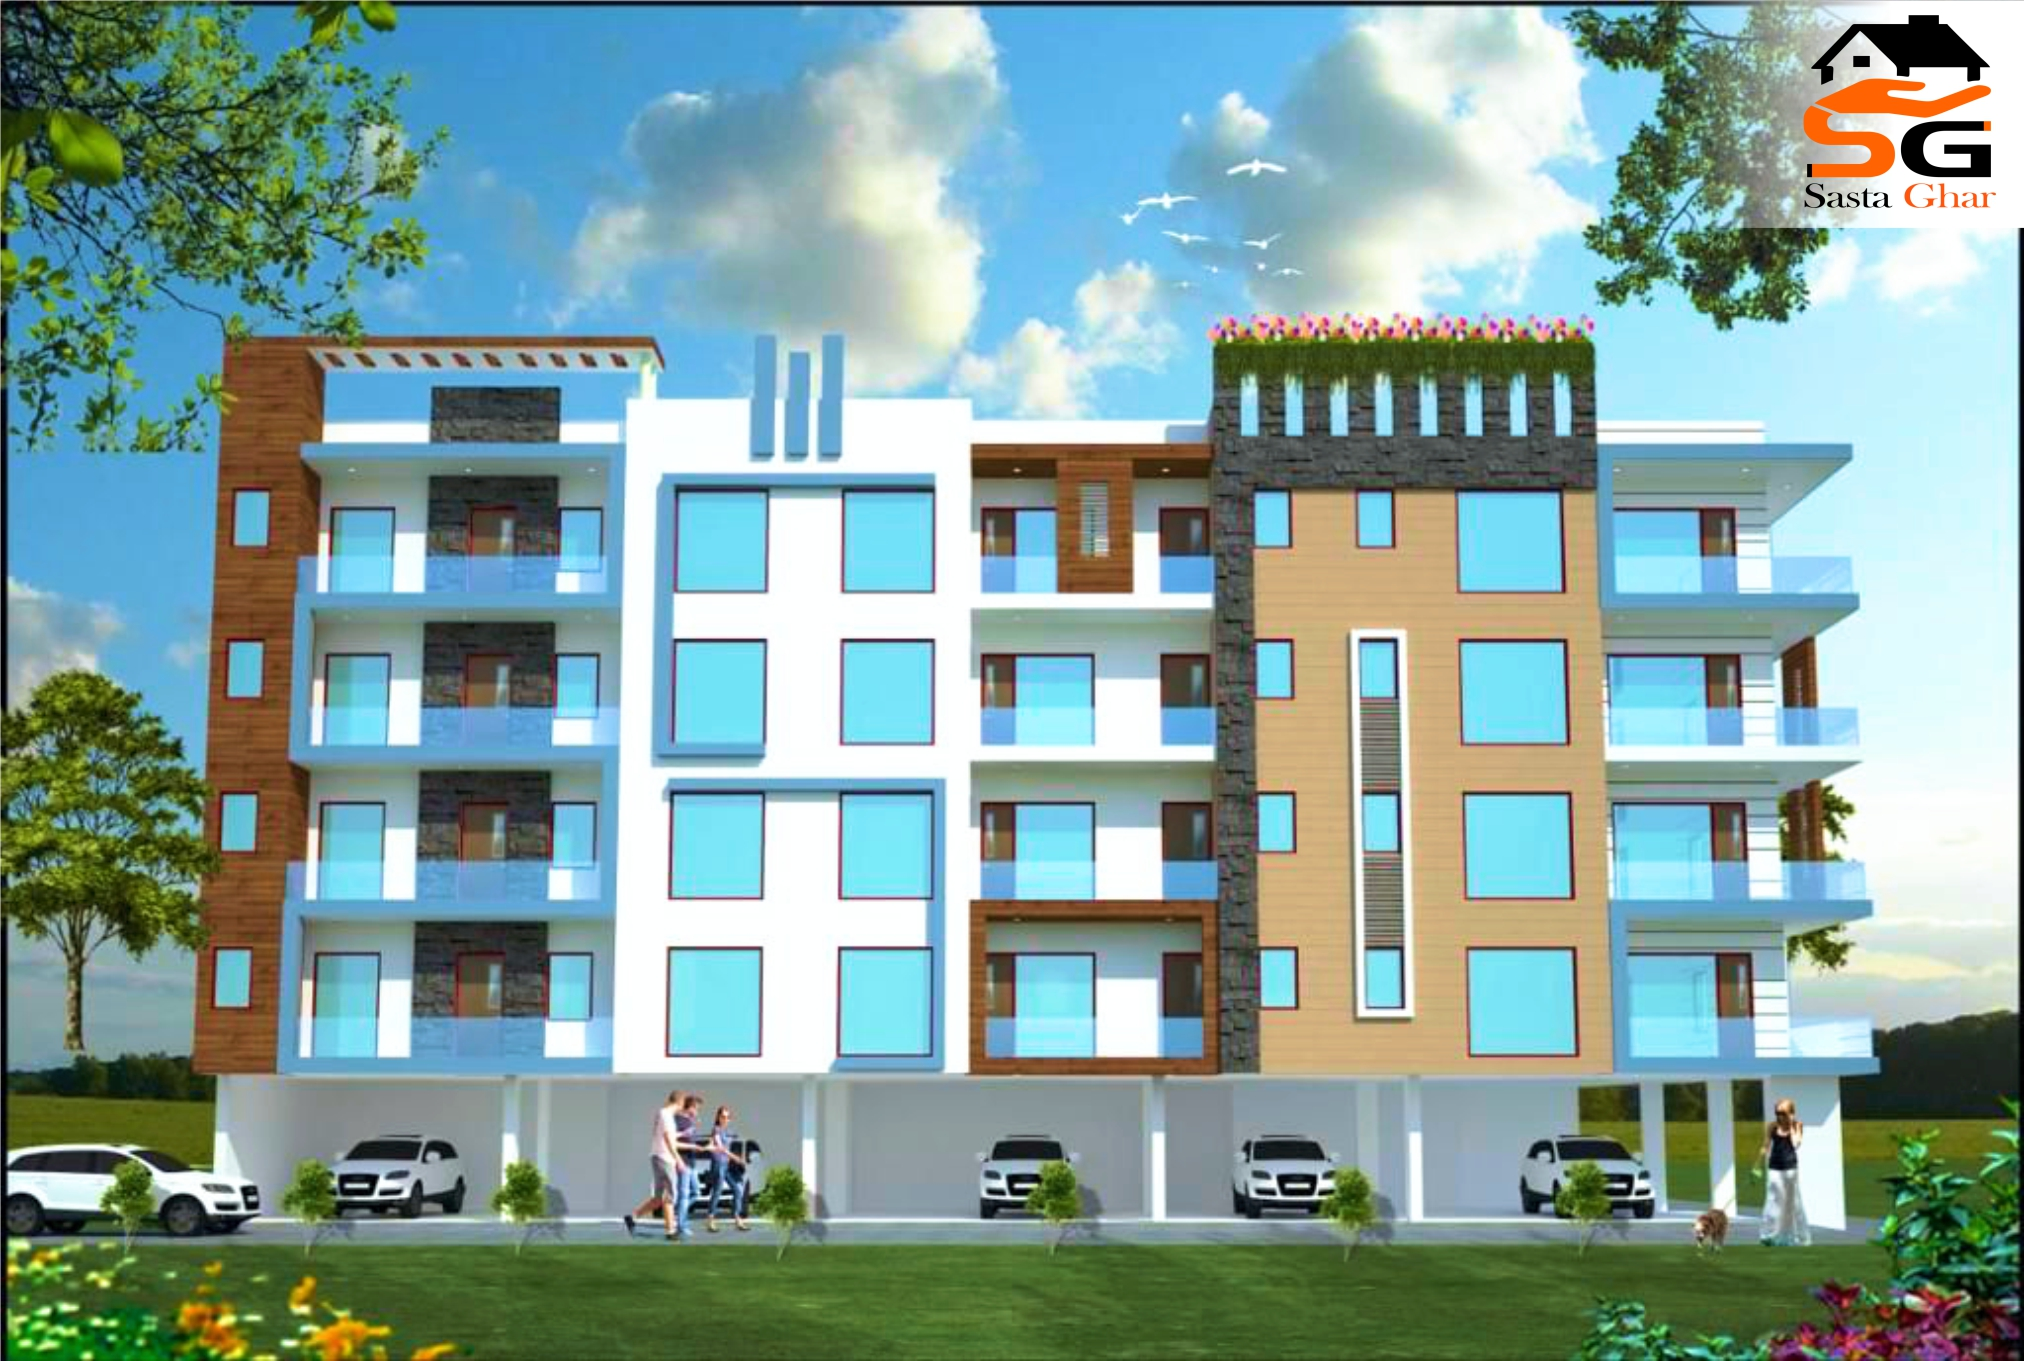 3 bhk flats in new Delhi image